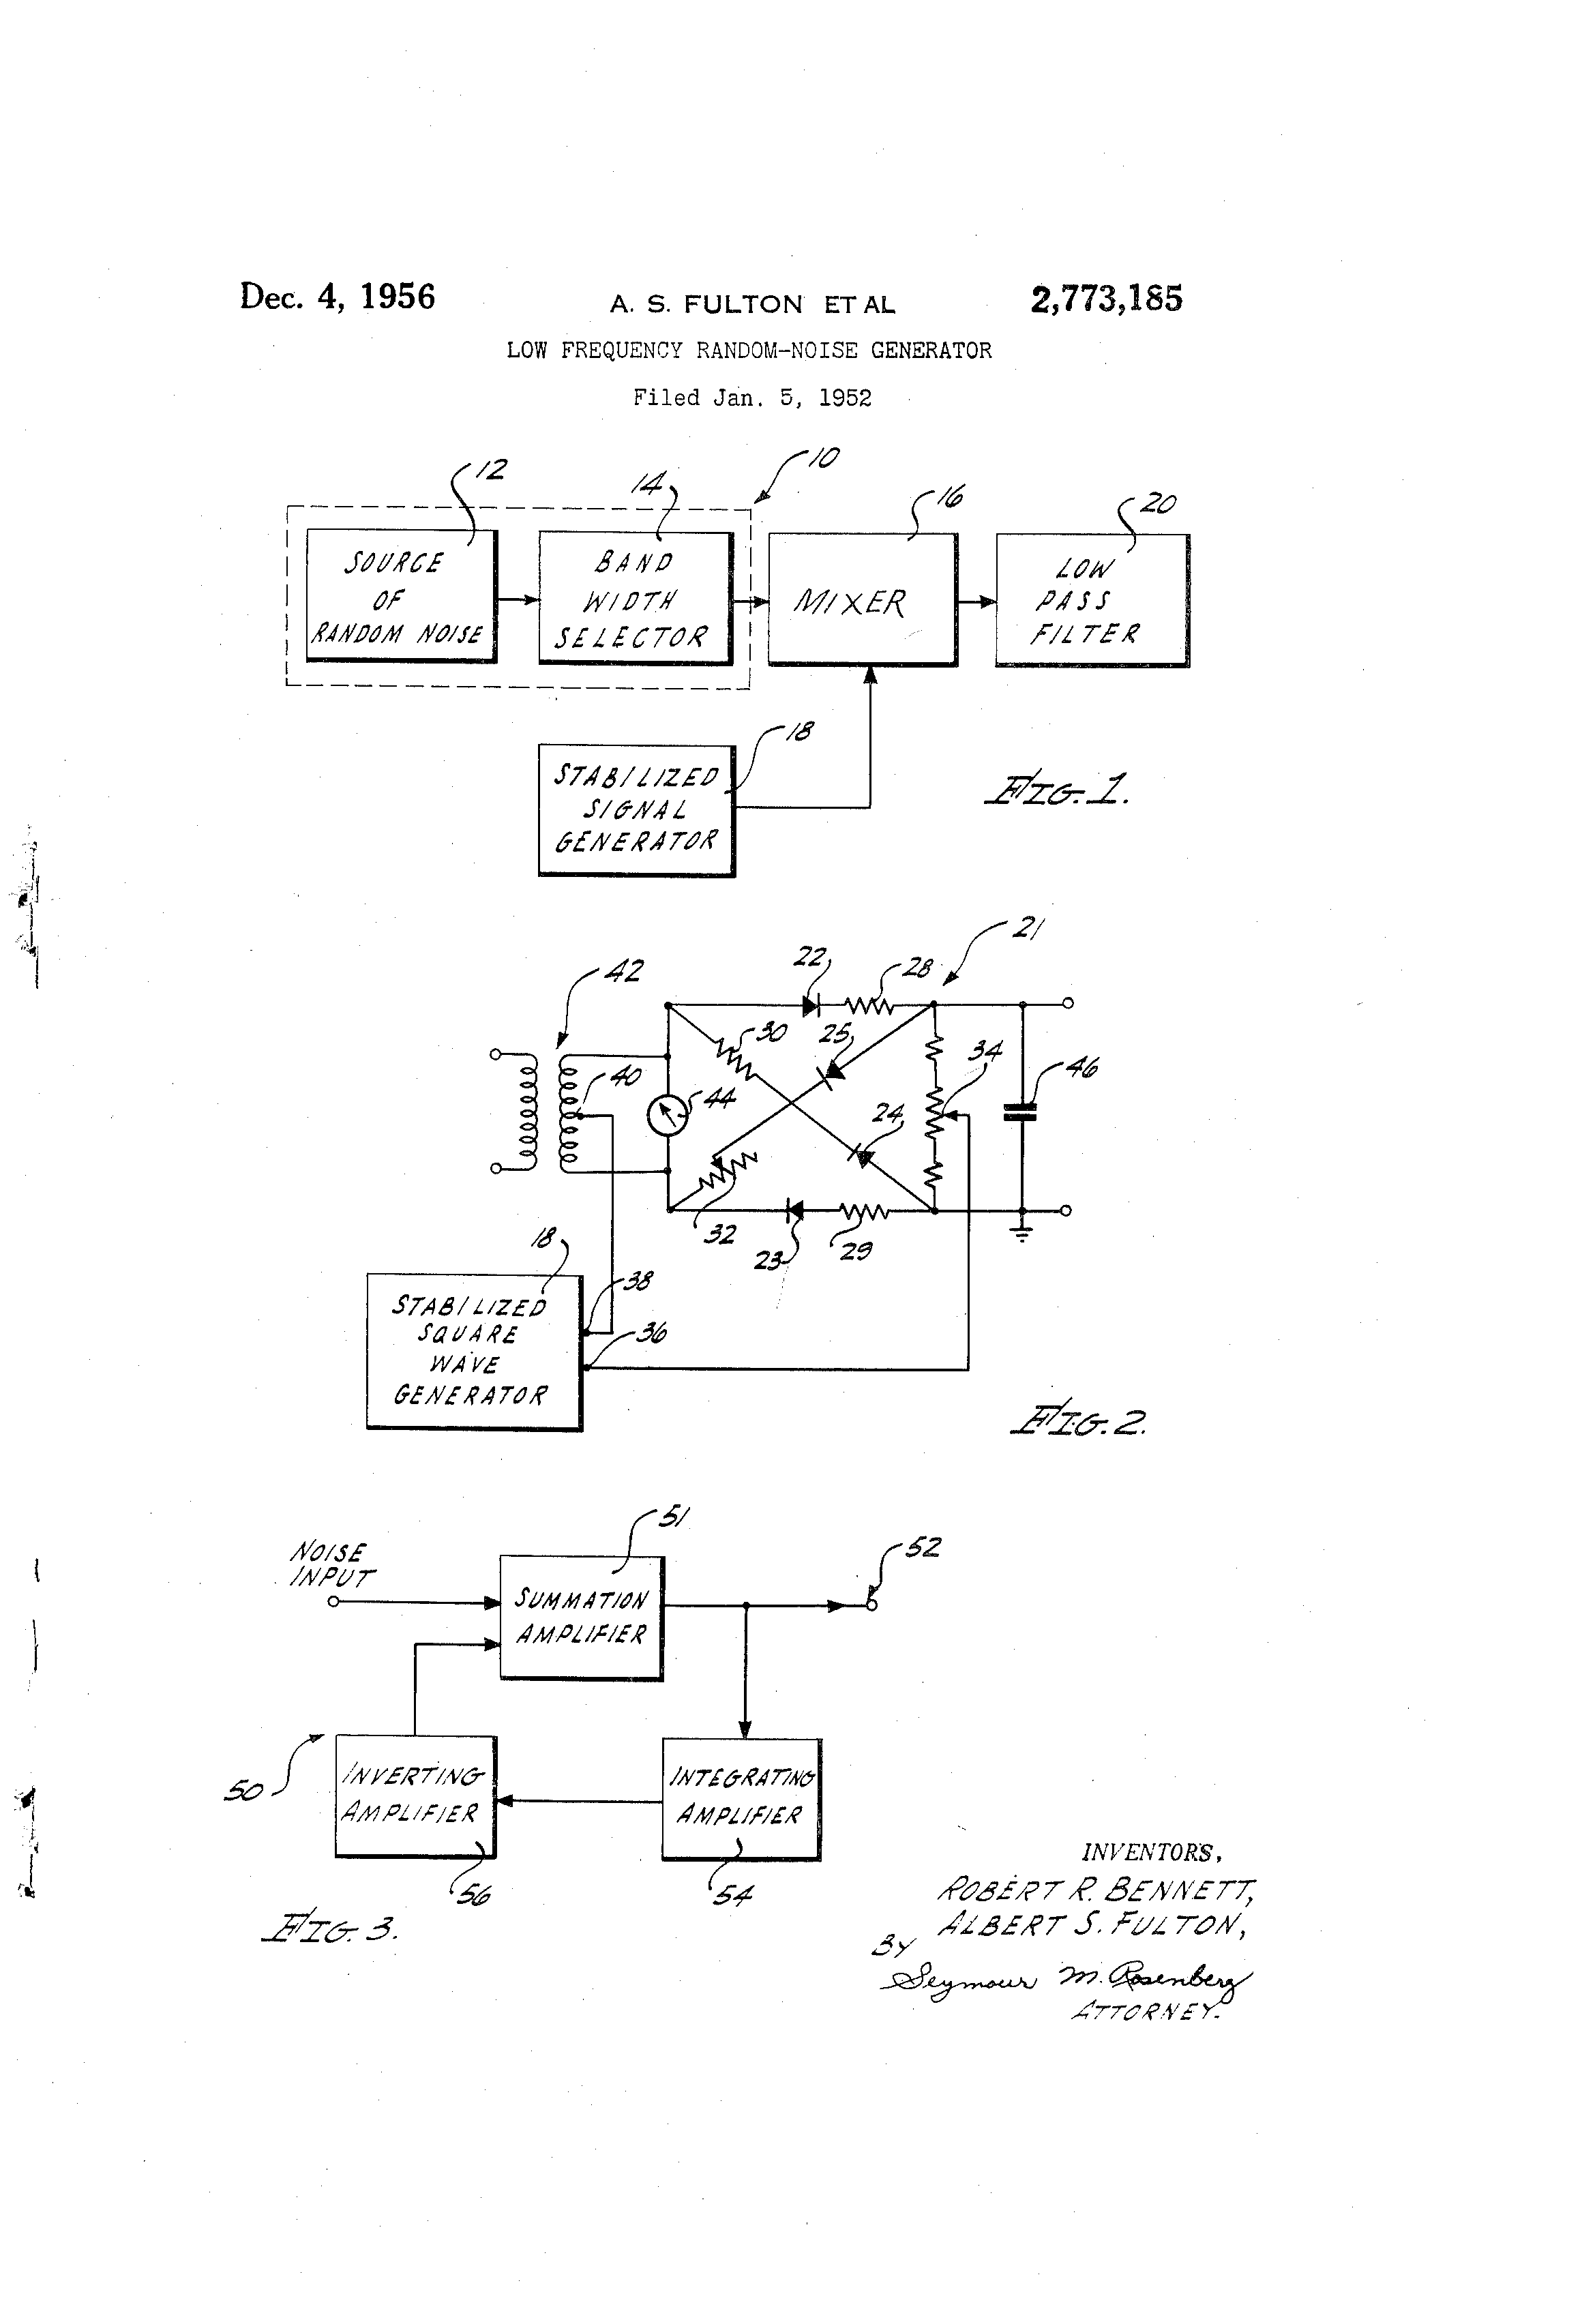 Patent US2773185 - Low frequency random-noise generator - Google Patents